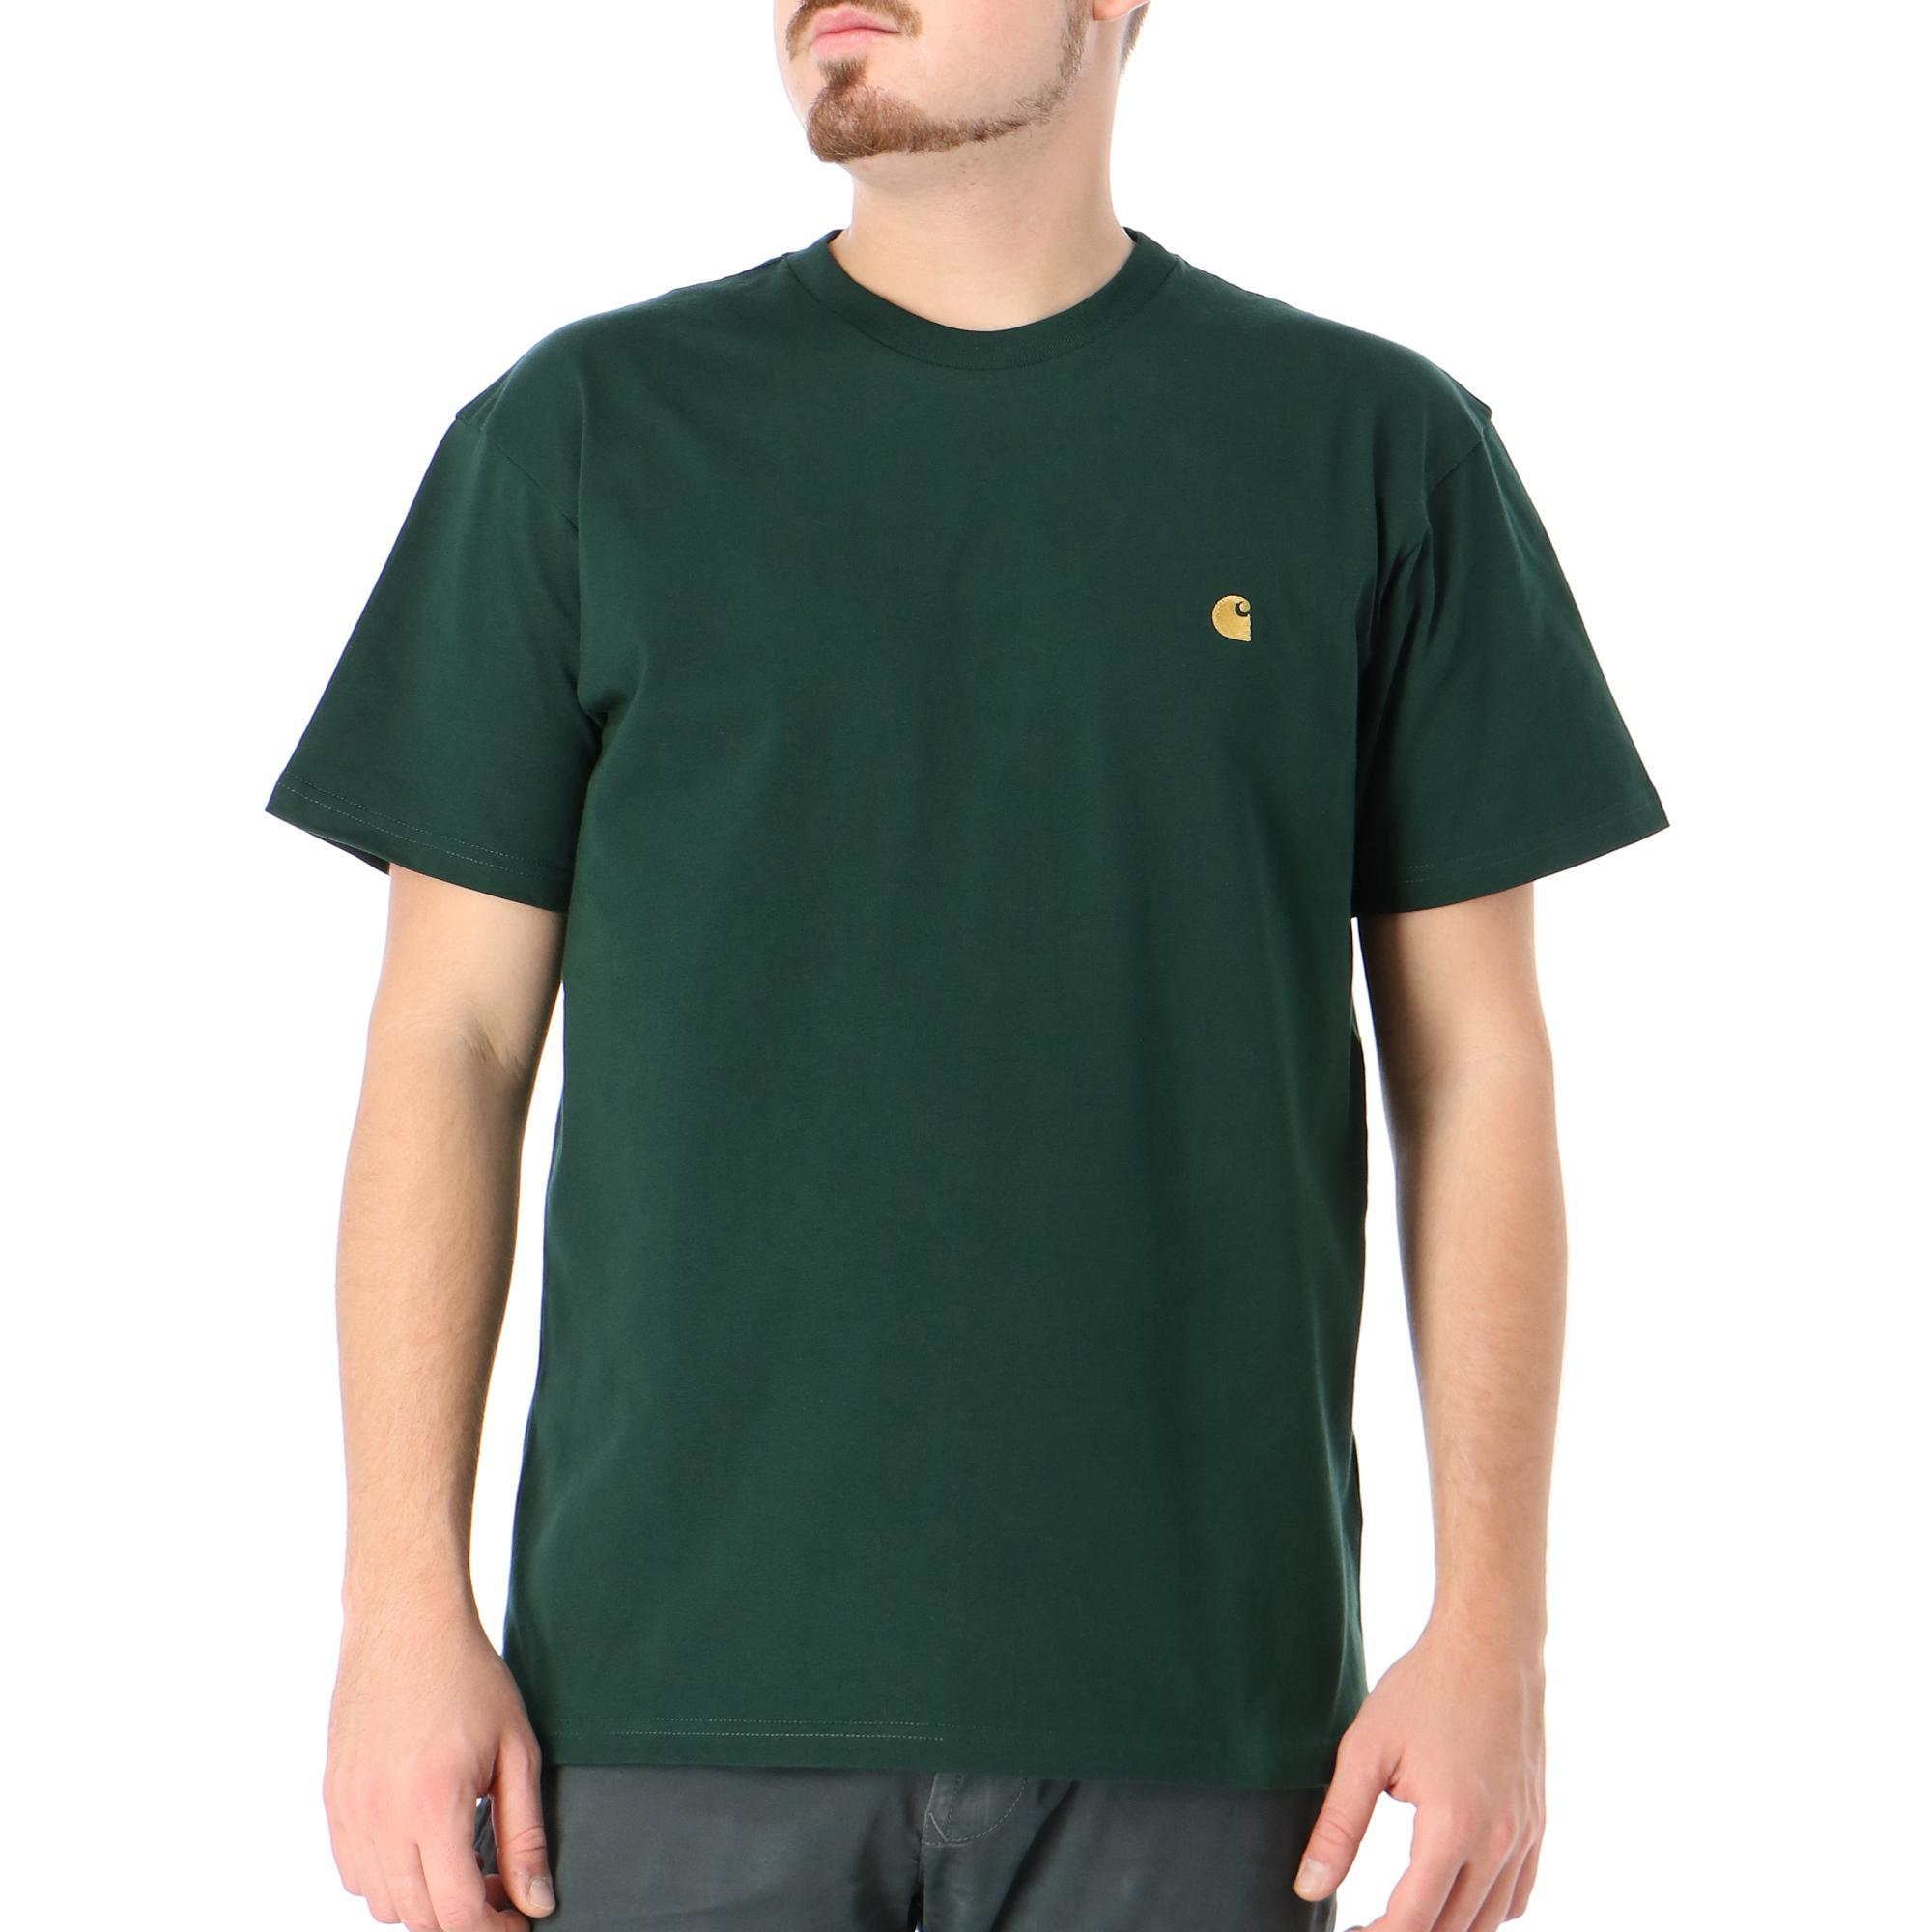 Carhartt S/s Chase T-shirt Bottle green gold